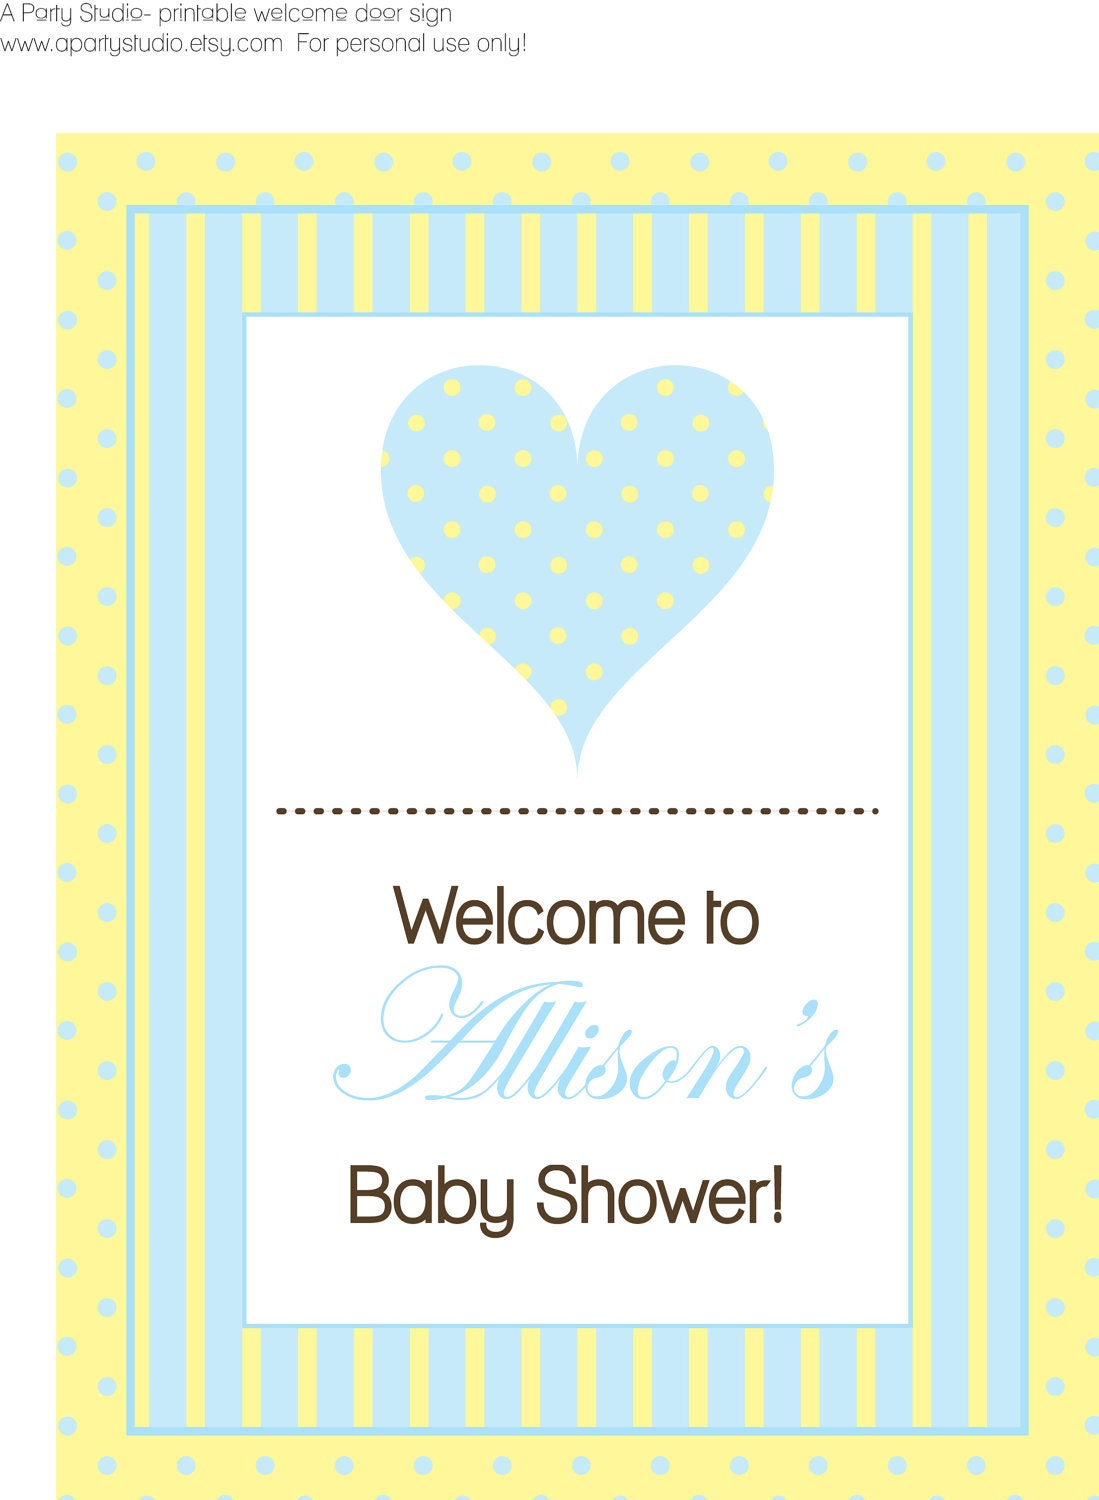 baby shower welcome sign blue and yellow print by apartystudio